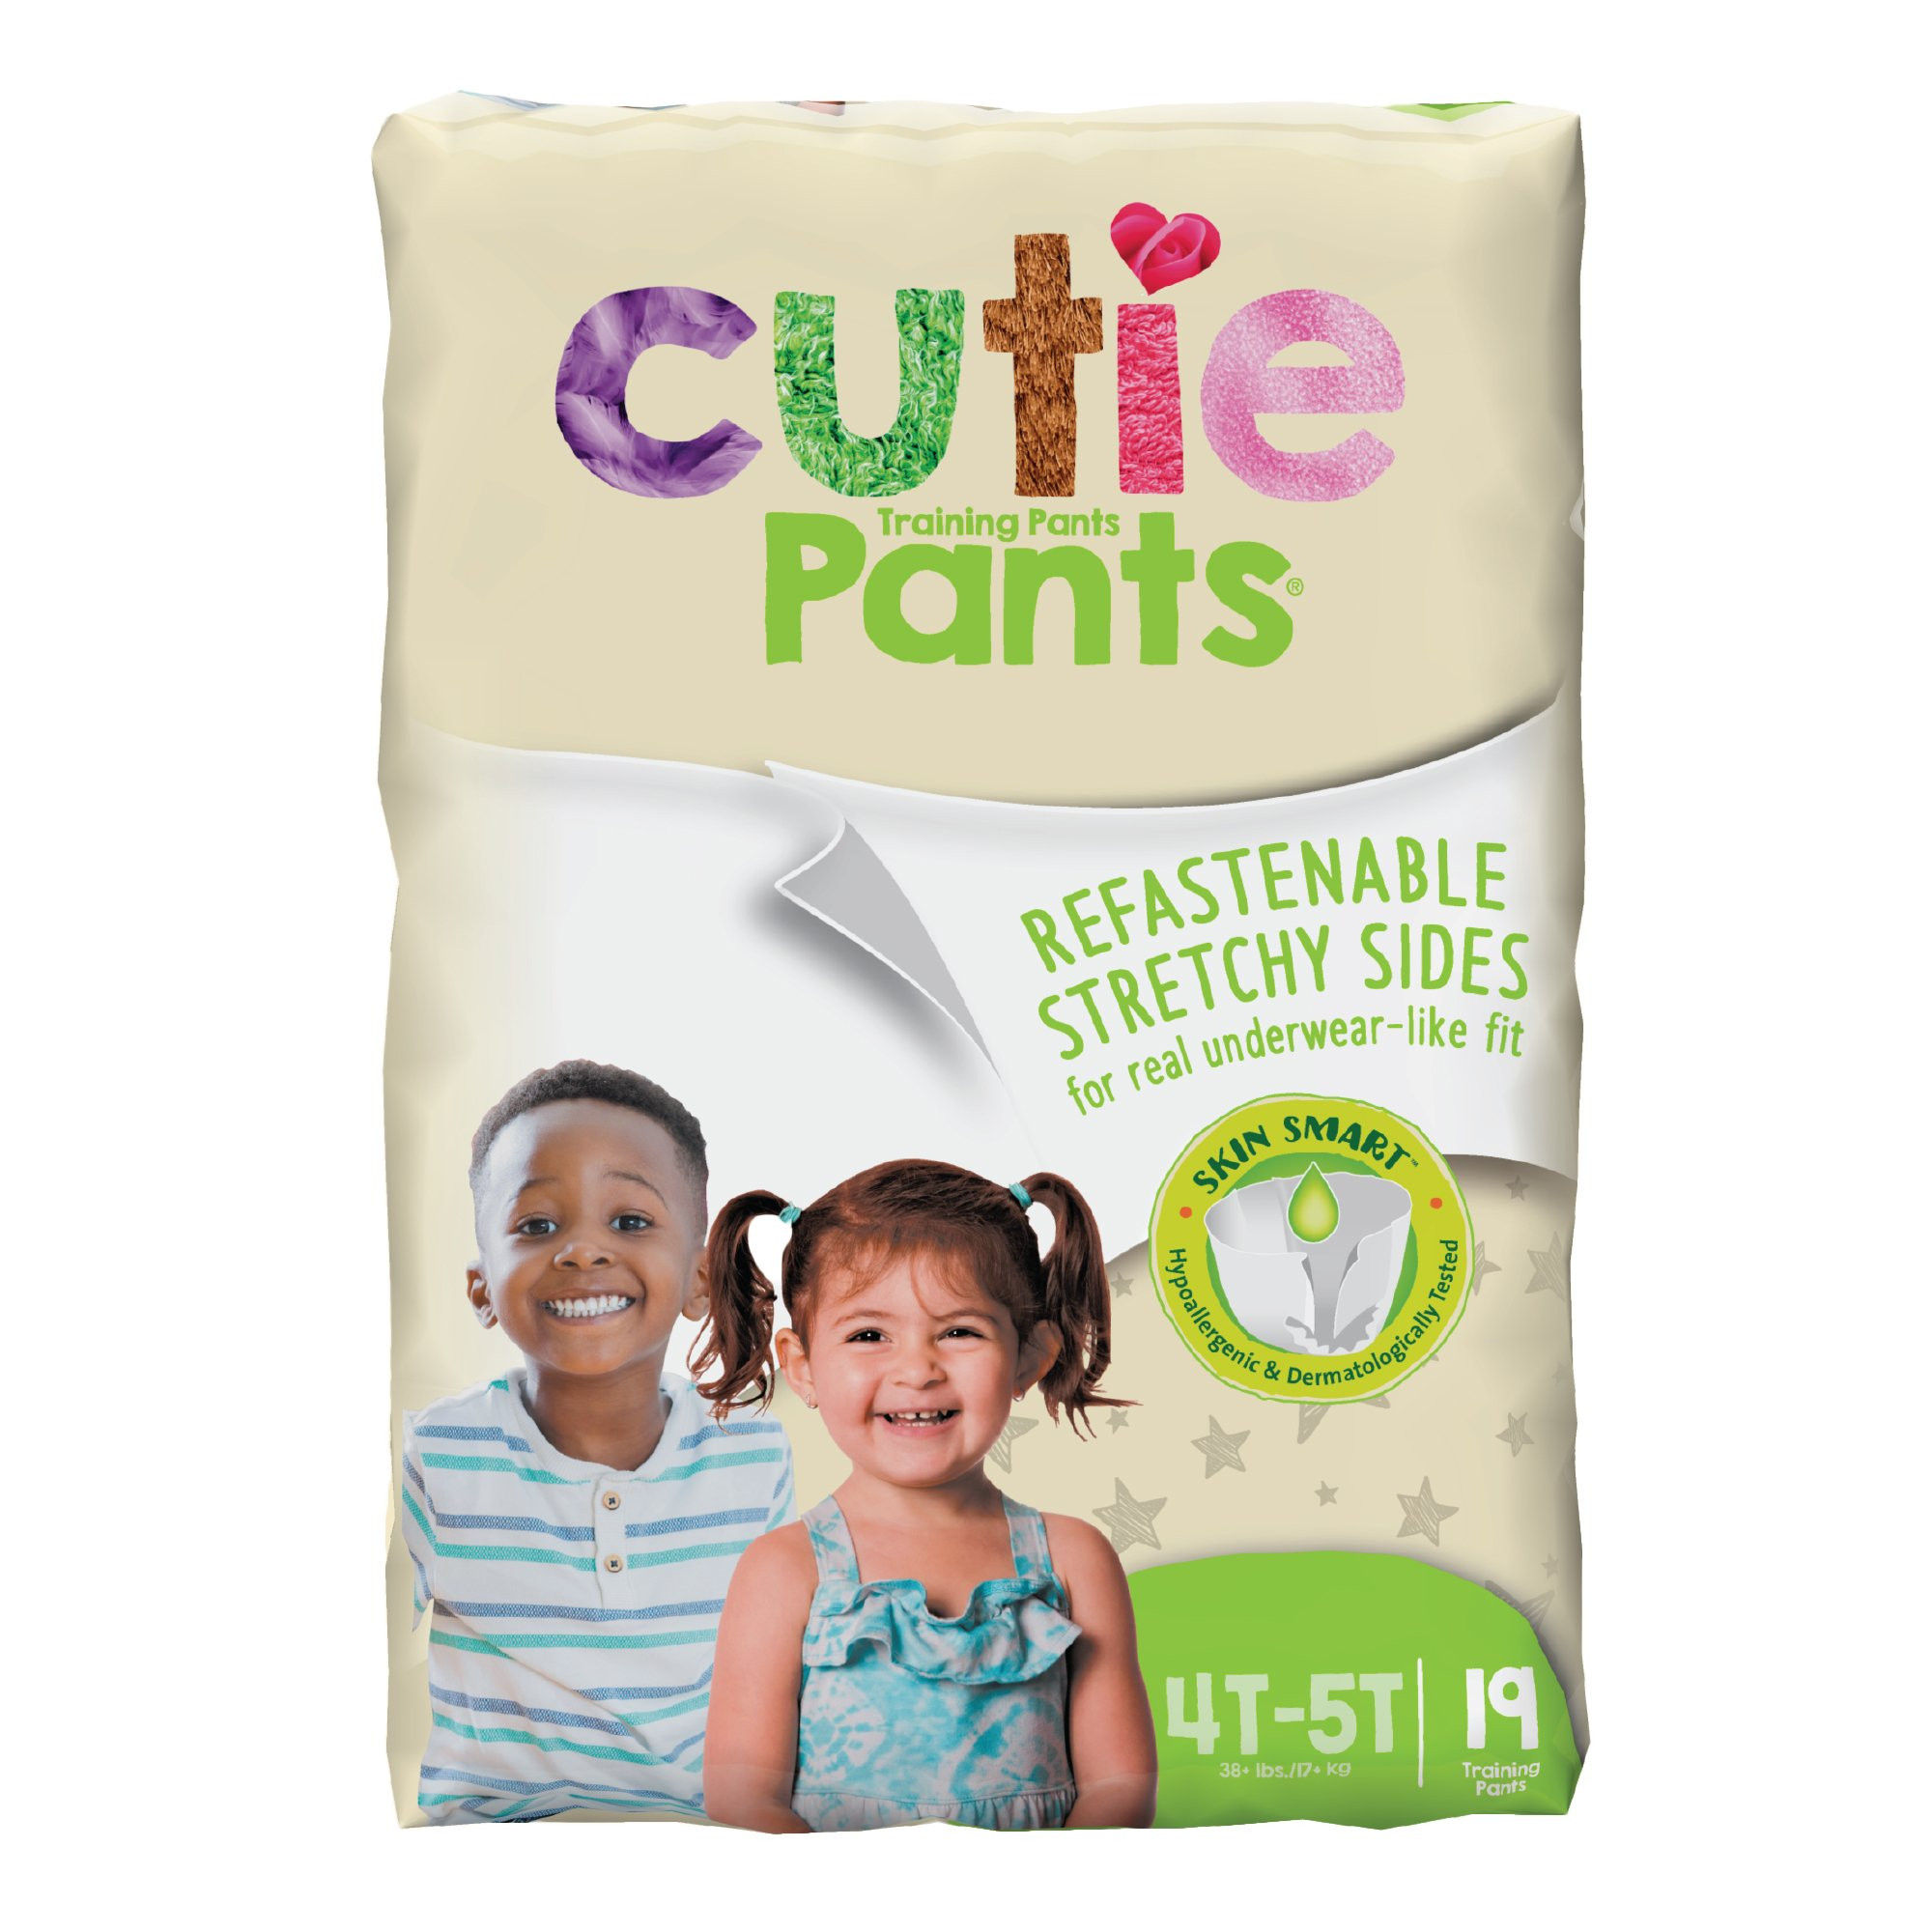 Cutie Pants Toddler Disposable Training Pants Pull ups, Heavy, WP9001/1, Size 4T-5T Over 35 lbs - Case of 76